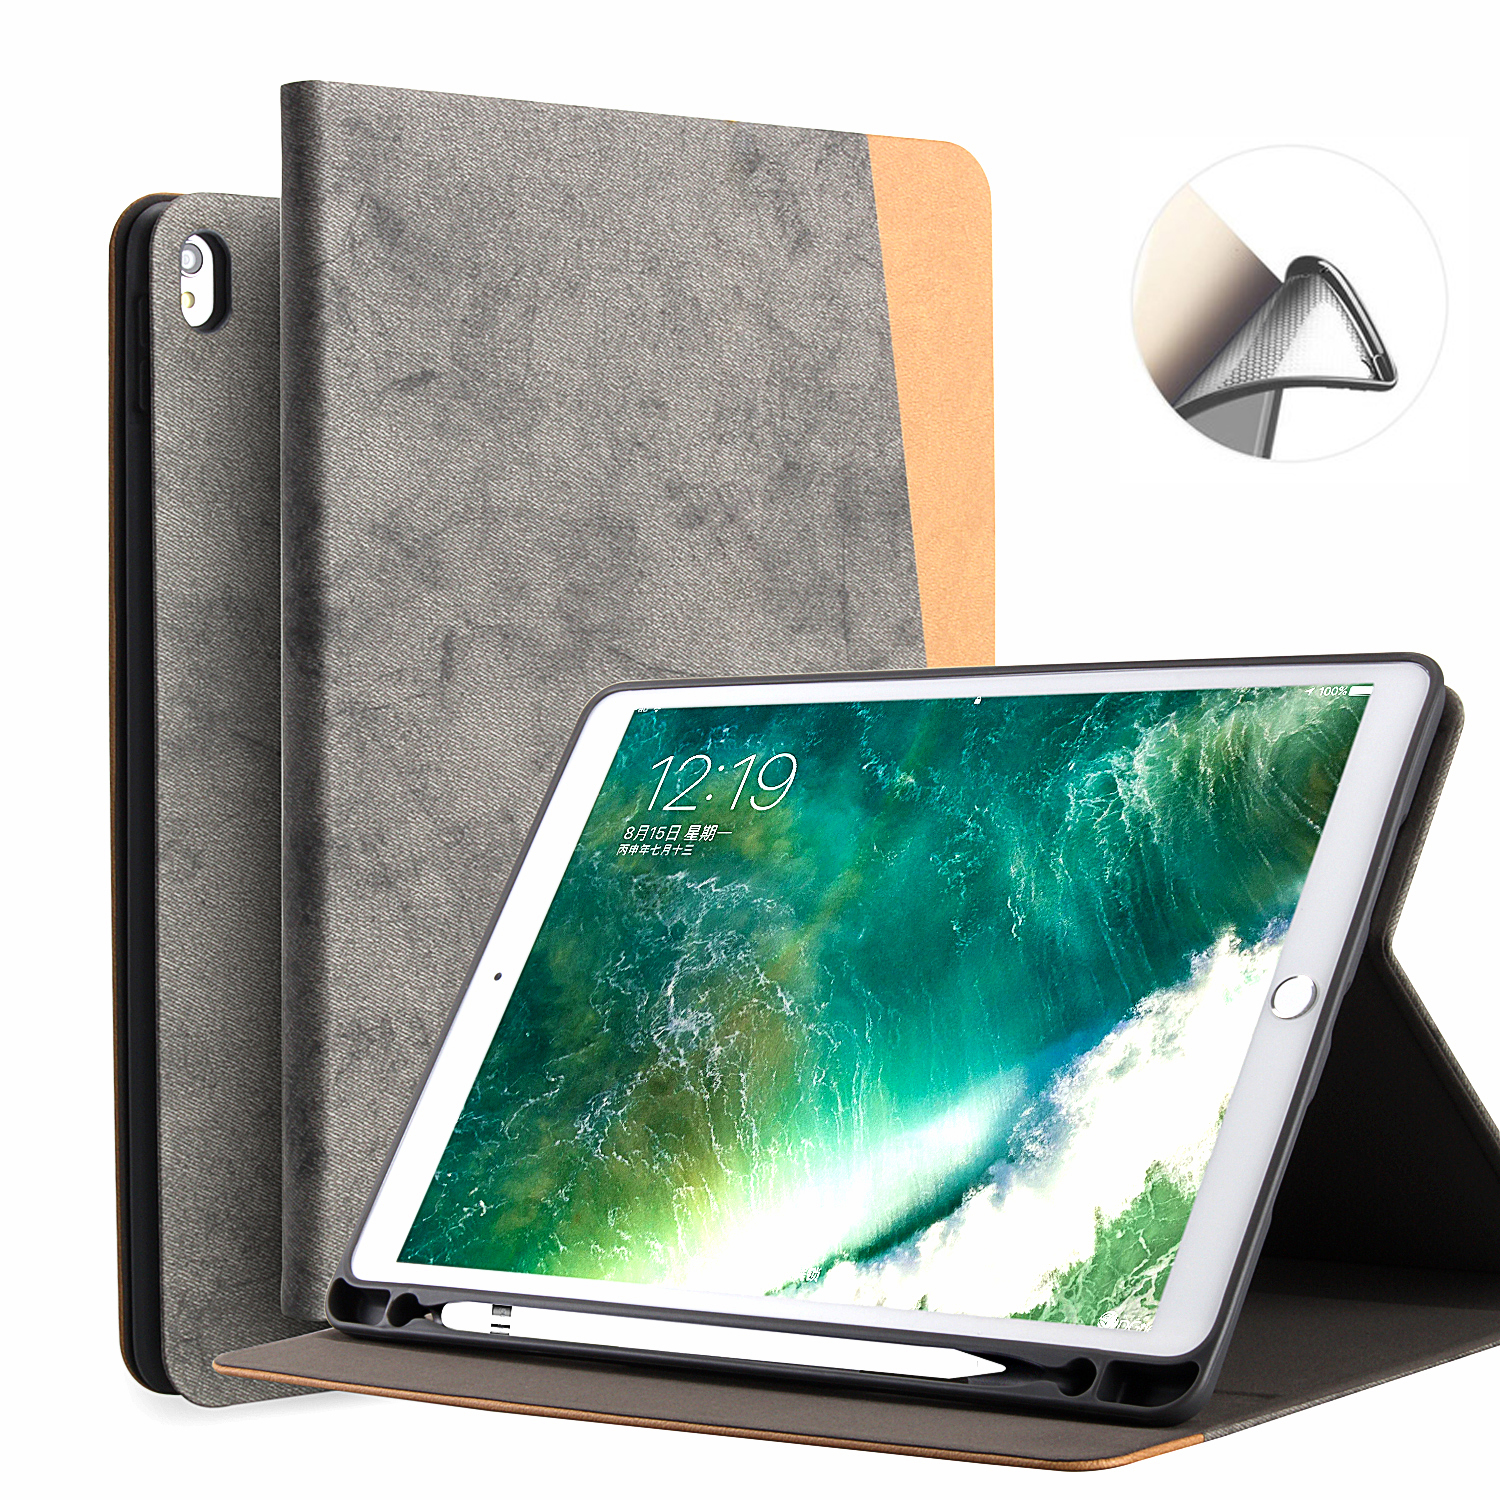 For iPad Pro 10.5 Case PU Leather Slim Smart Cover With Auto Sleep/Wake For Apple iPad Pro 10. 5 inch 2017 New for ipad pro 10 5 case pu leather slim smart cover with auto sleep wake for apple ipad pro 10 5 inch 2017 new